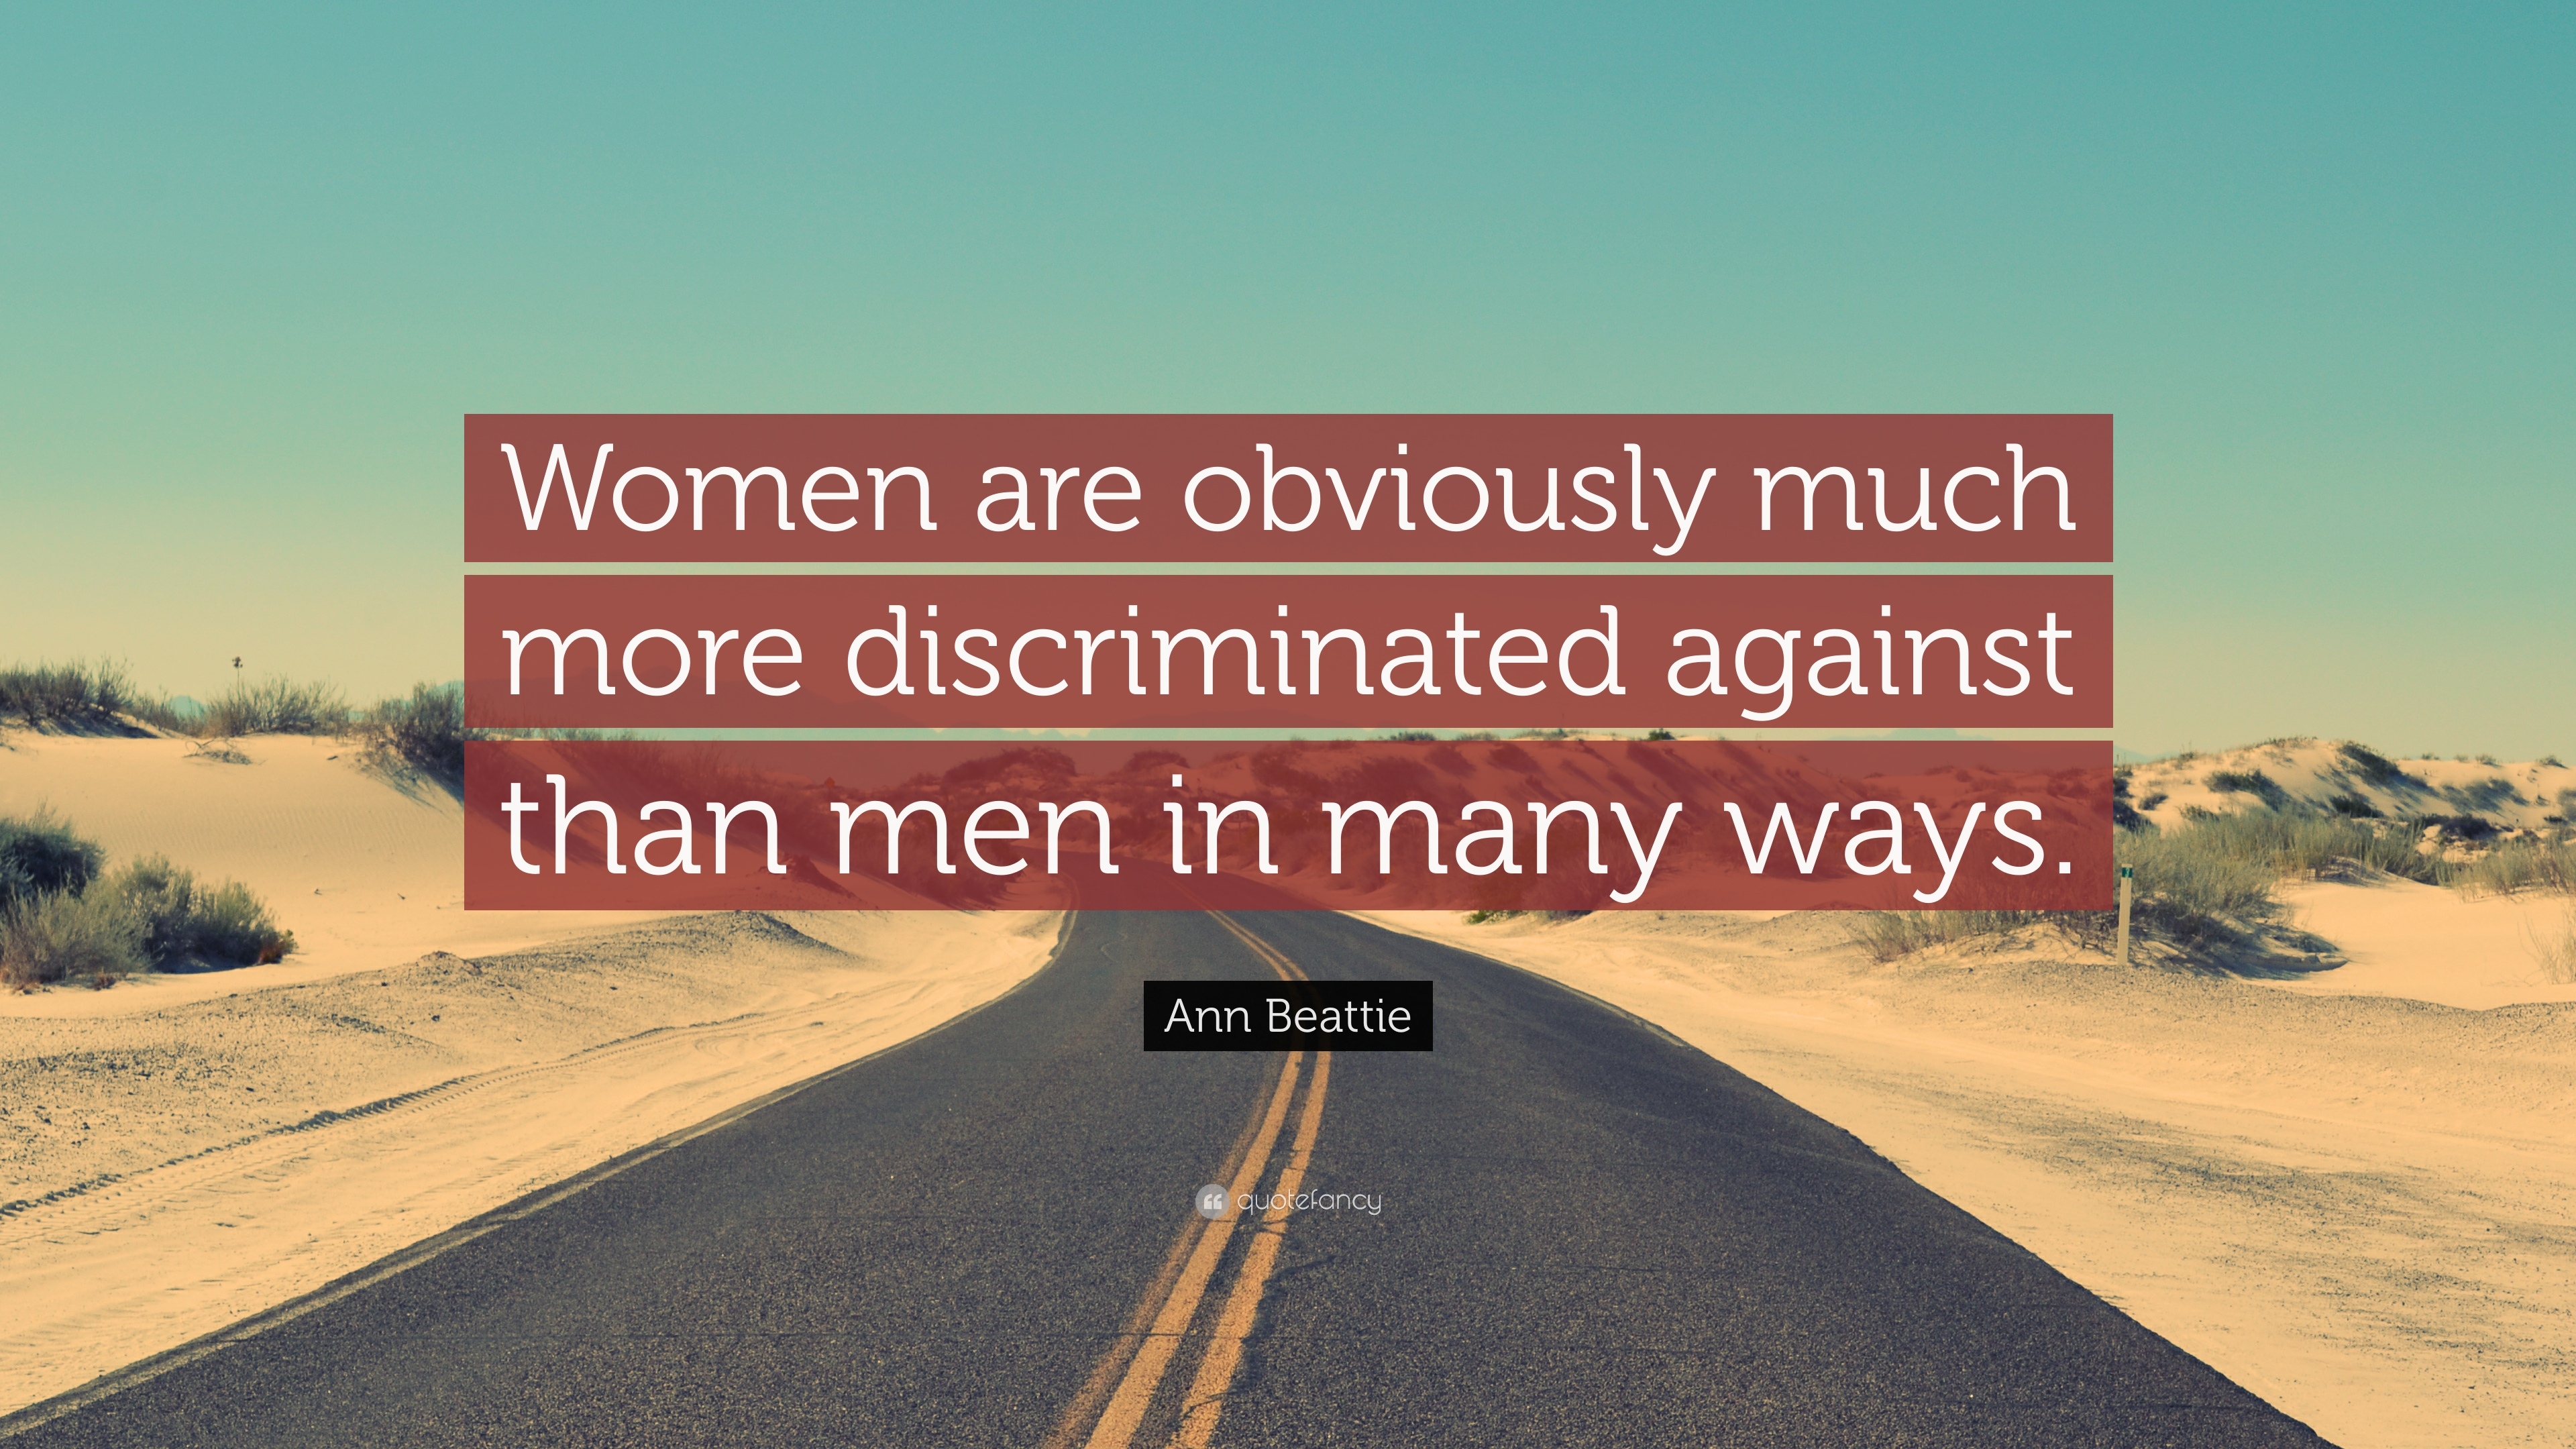 ways men are discriminated against